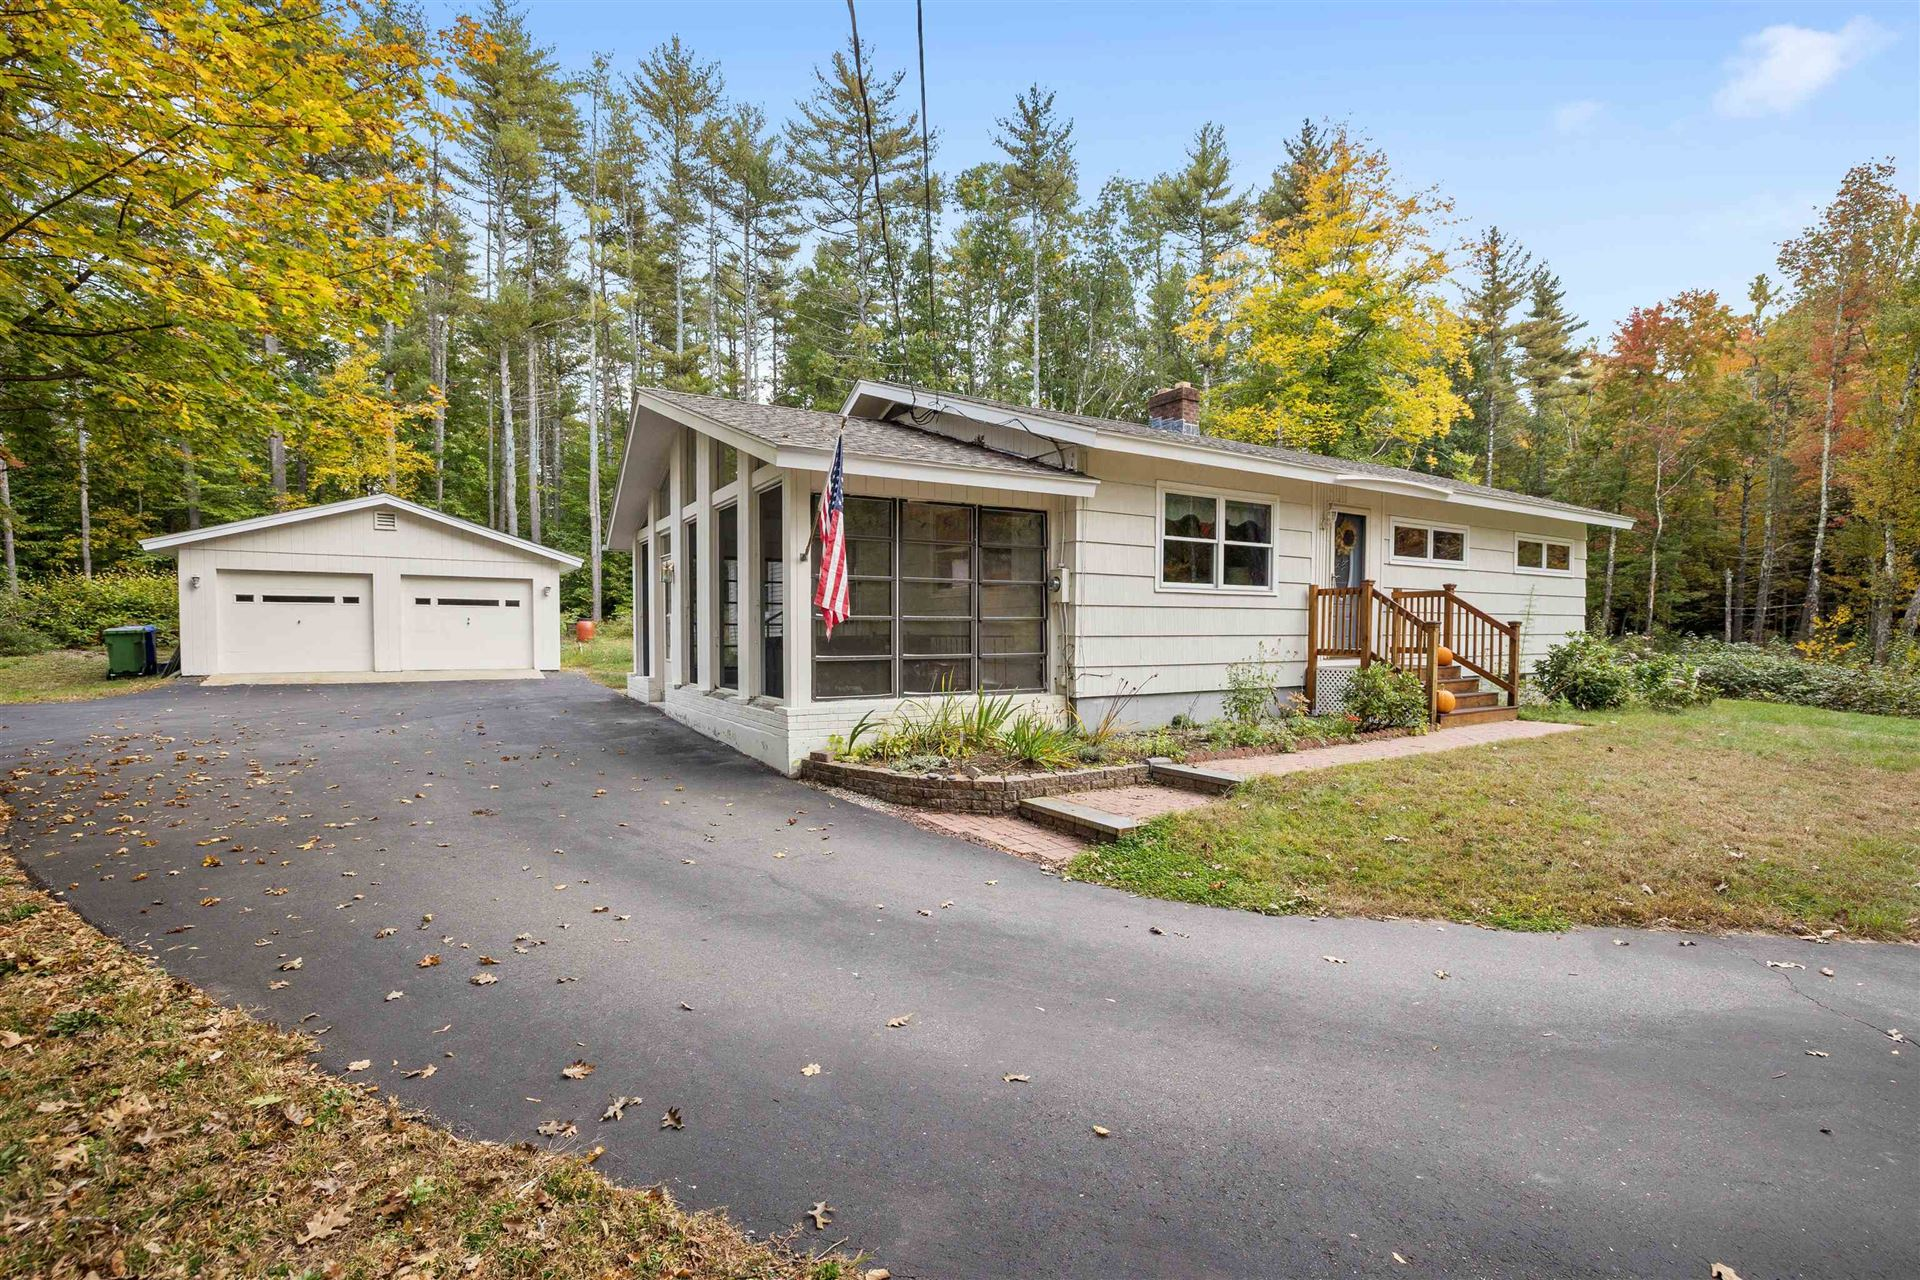 27 Bow Center Road, Bow, NH 03304 - MLS#: 4886661